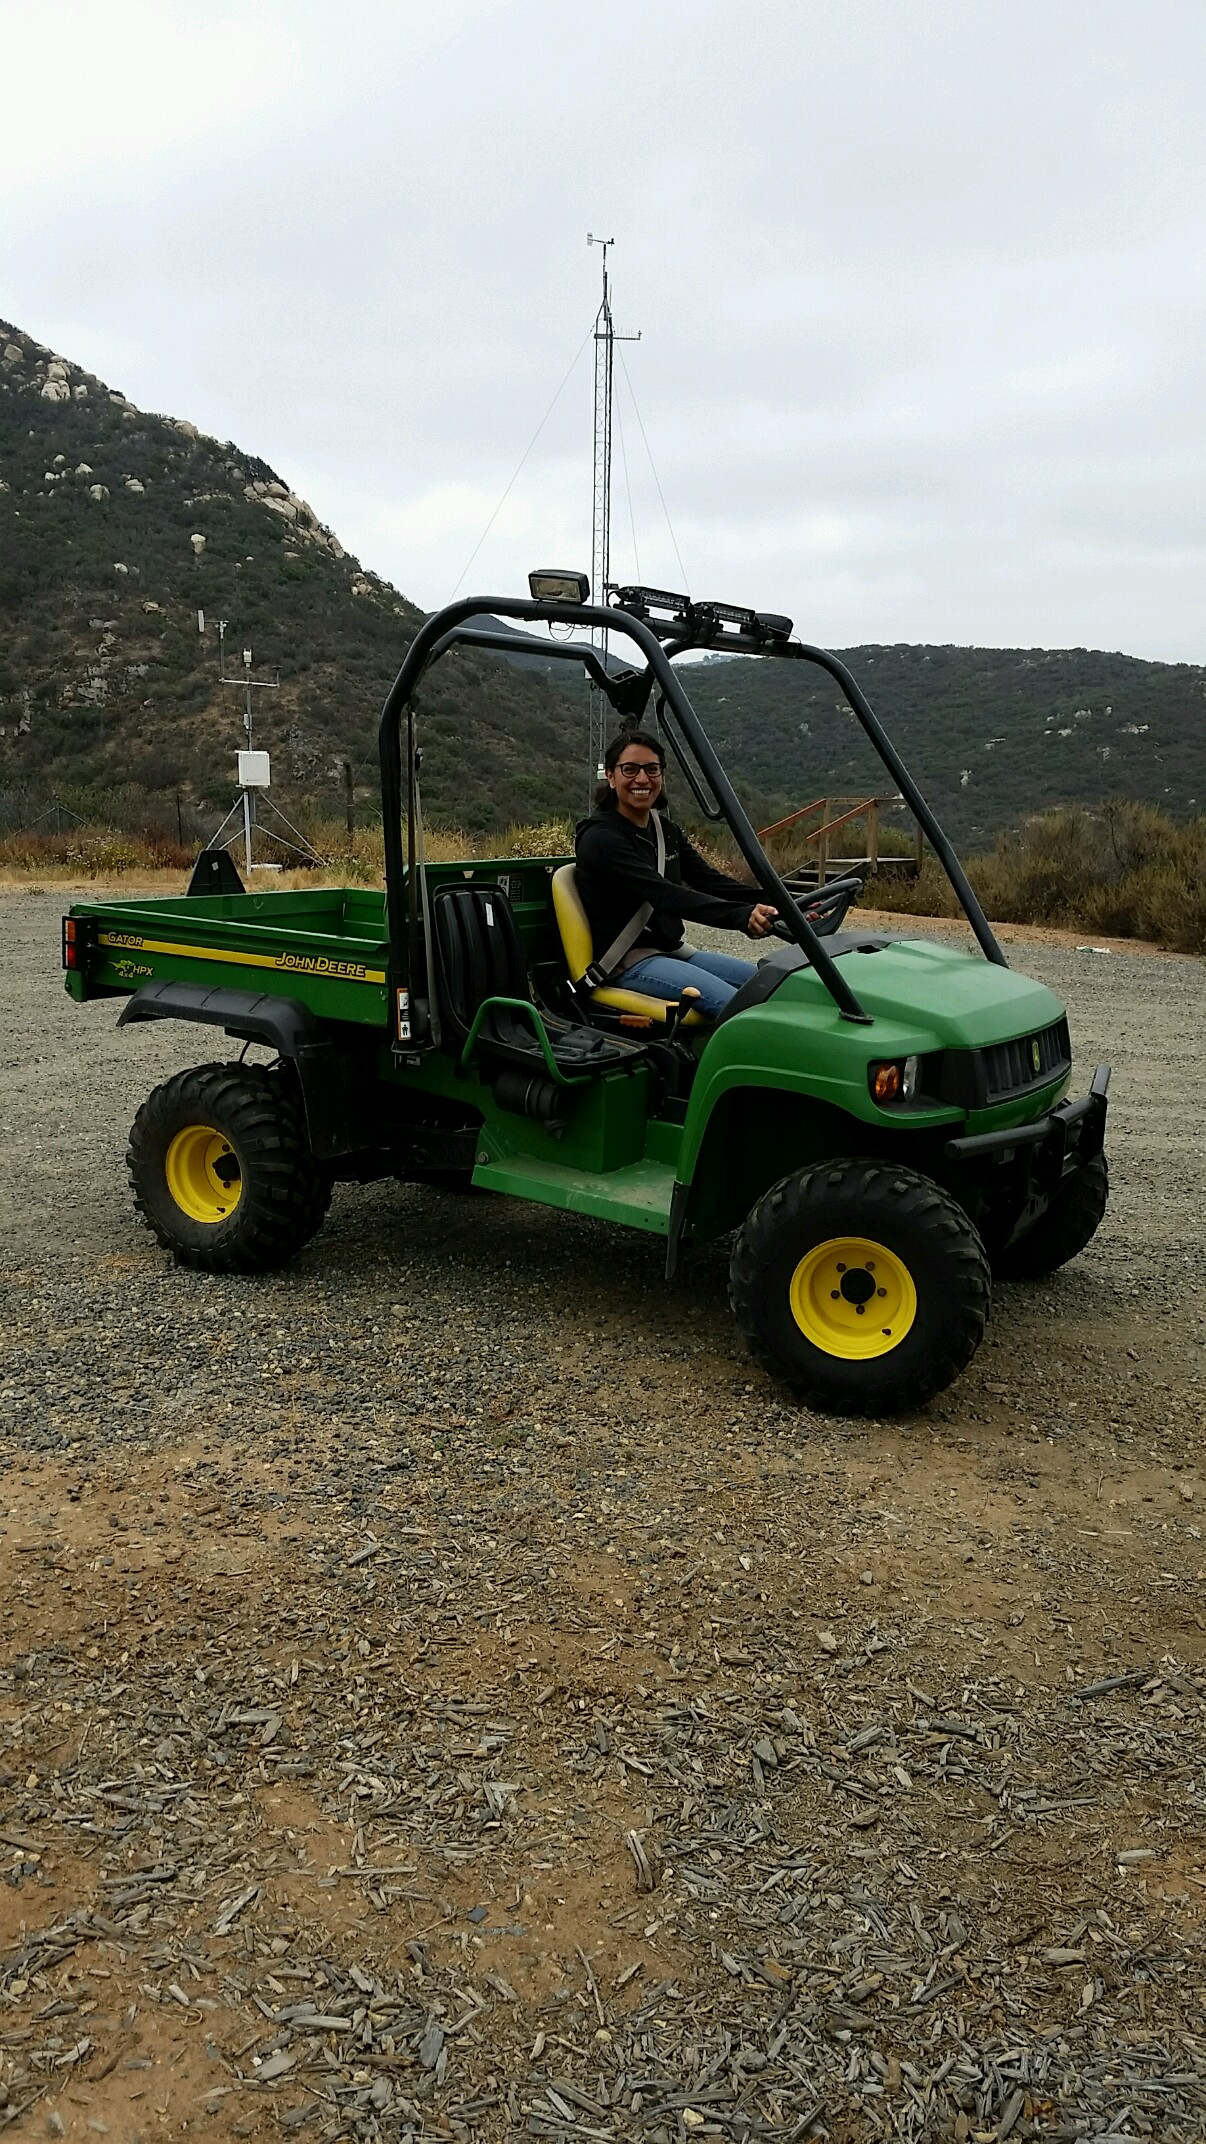 Mayra Molina  in a gator headed down the valley to pick up water samples from the field team. Image: Carly Beck